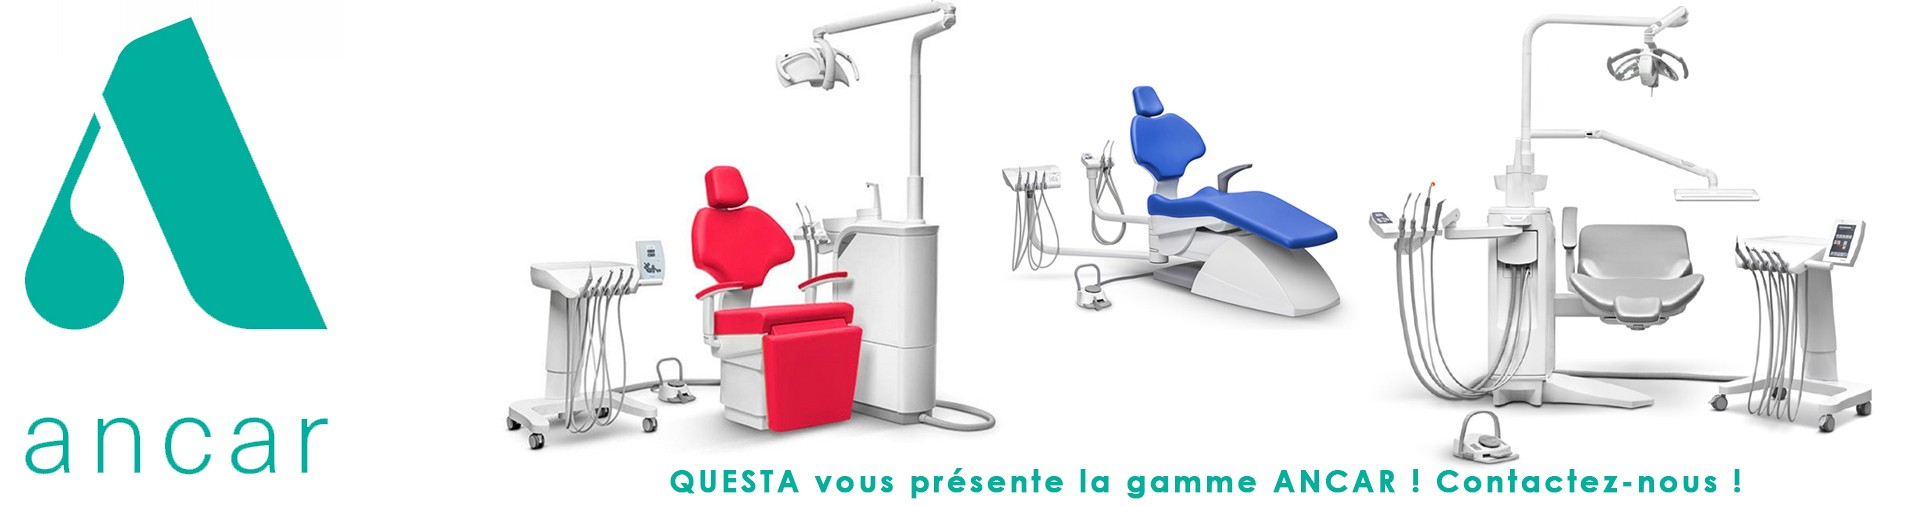 ANCAR dental chair